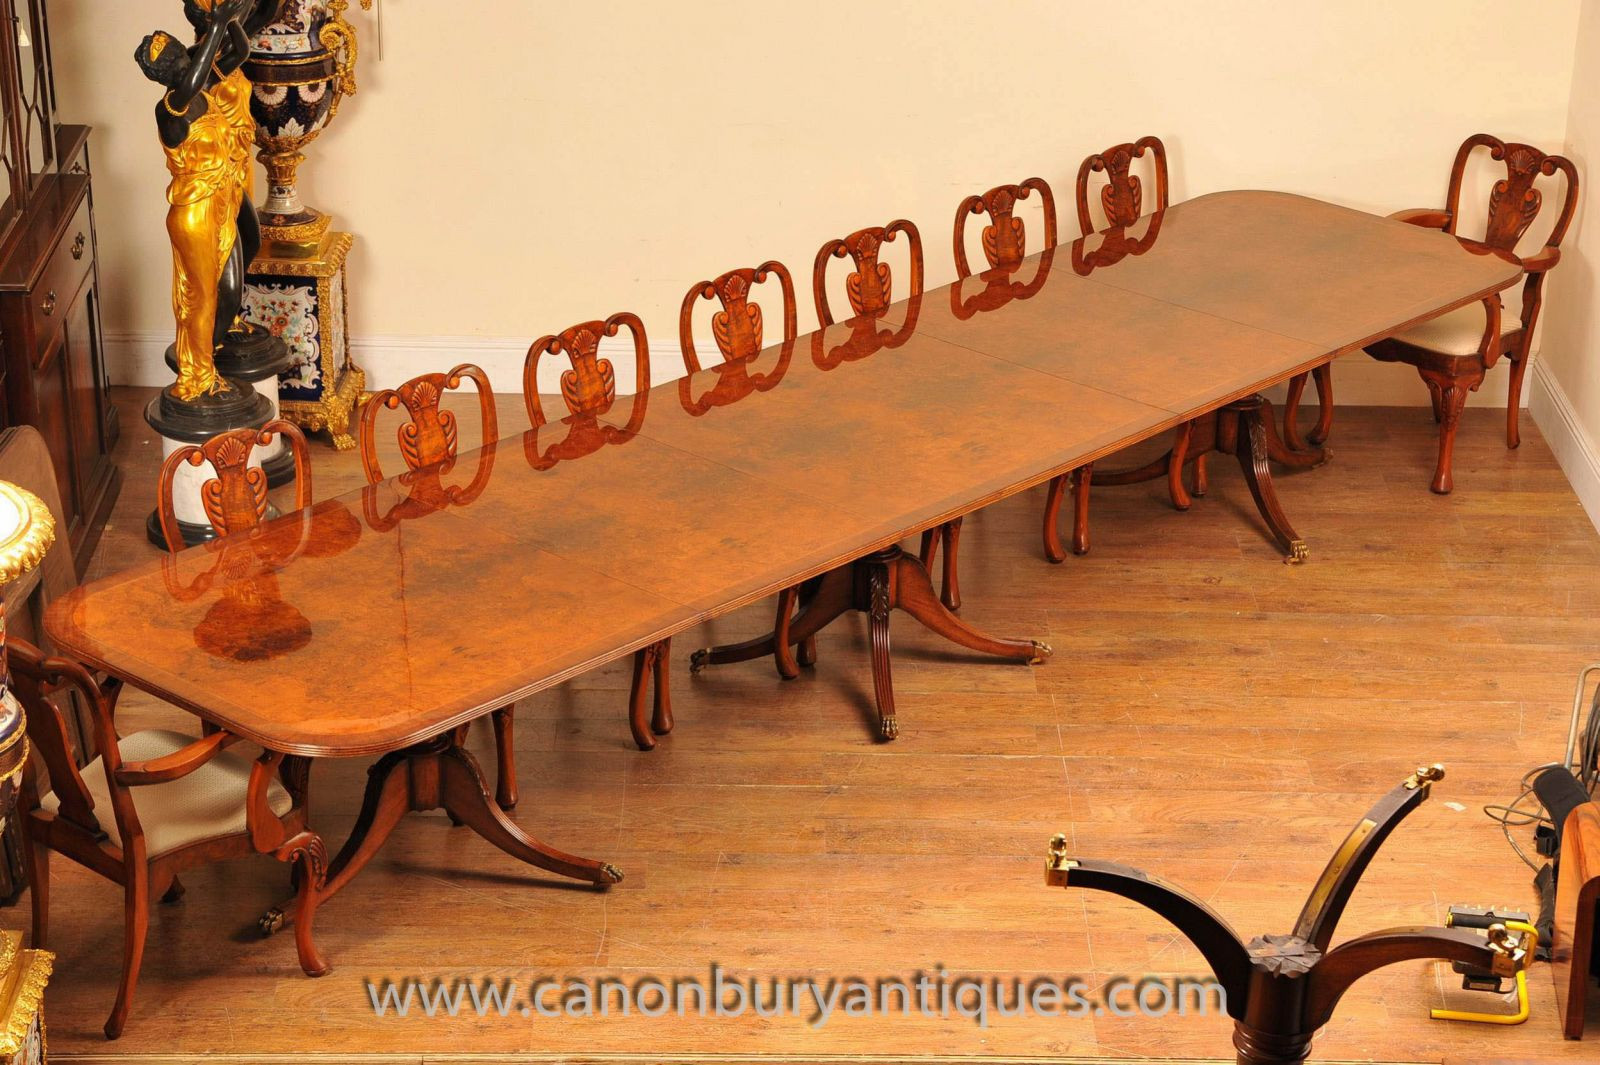 Large Regency Pedestal Table and Set of Chairs www_canonburyantiques_com (1)-2